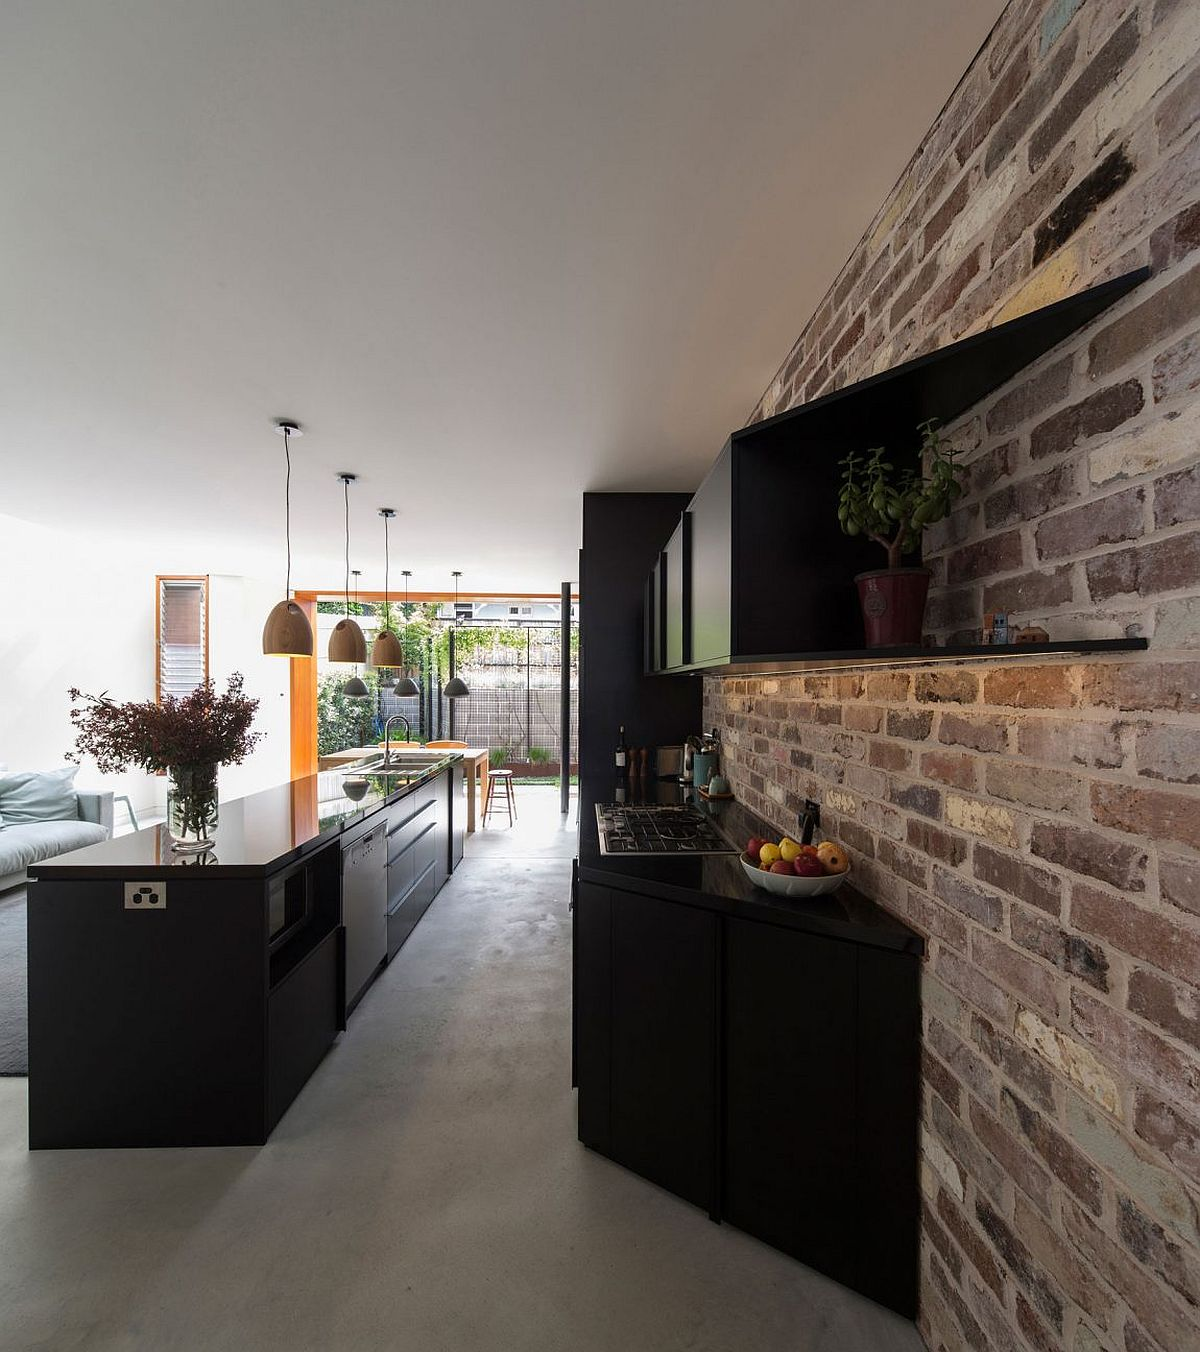 outside kitchen island cabinets at ikea budget family home in sydney uses reclaimed bricks ...